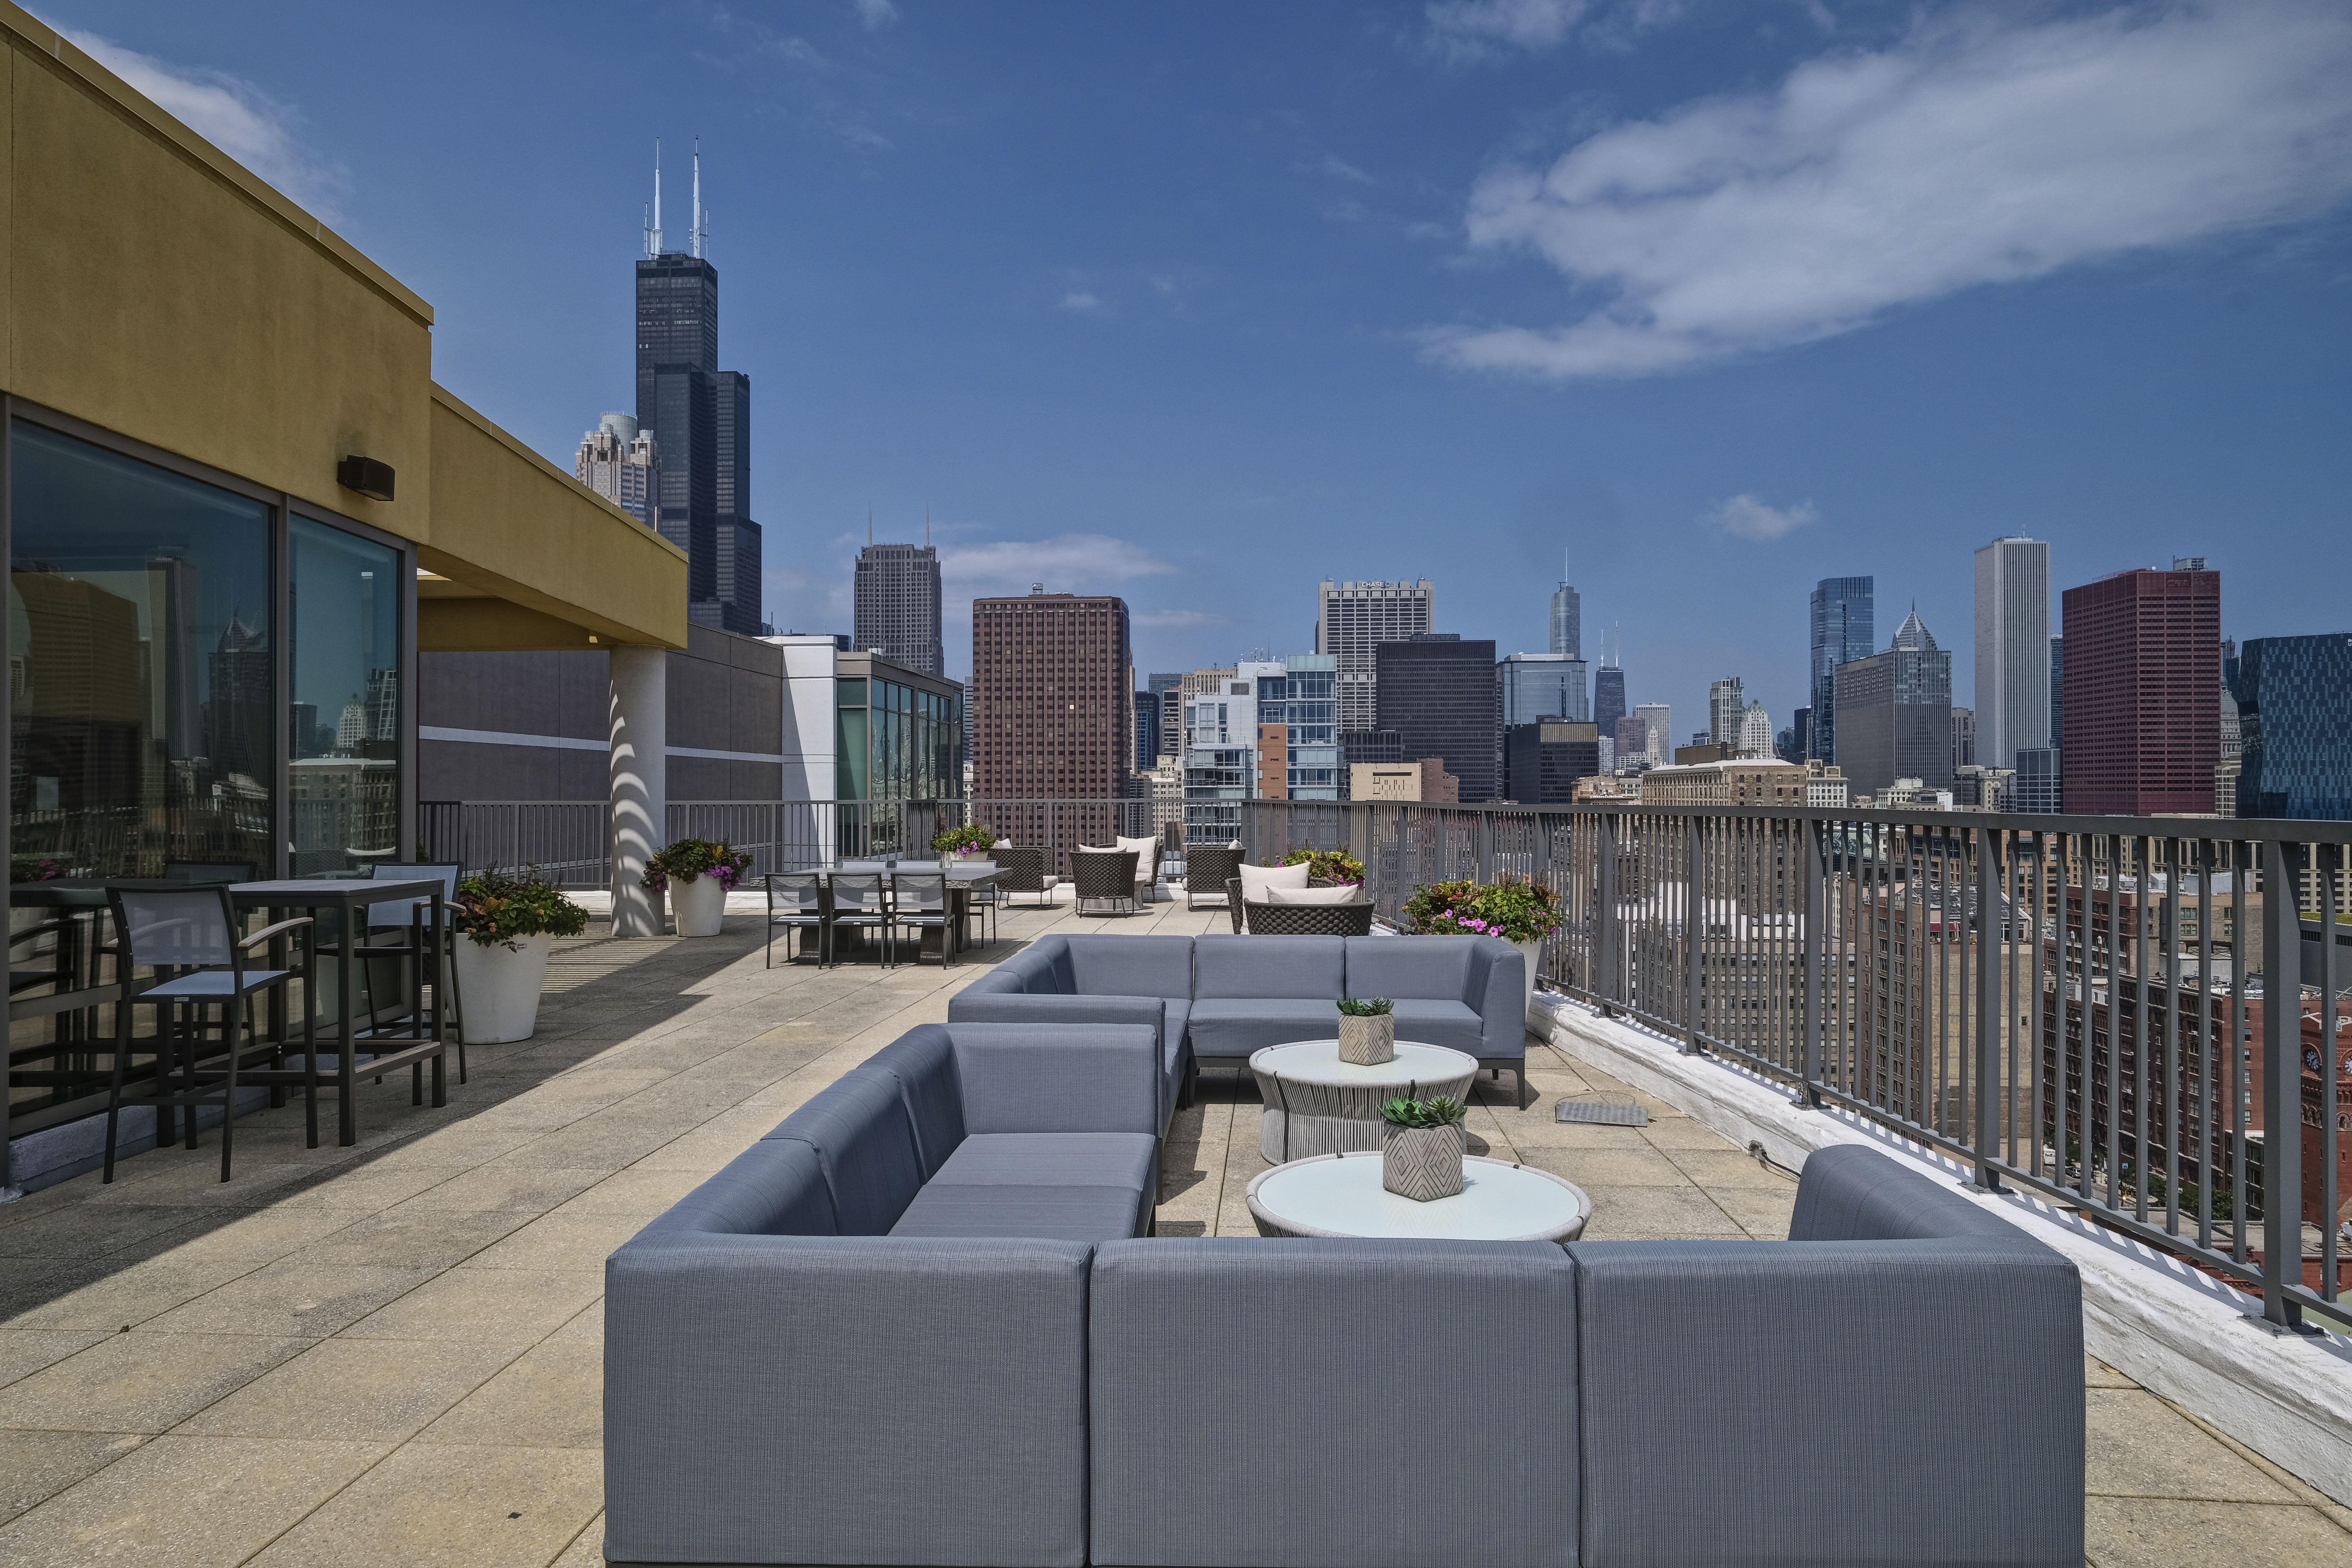 Our South Loop apartments in Chicago have a rooftop deck